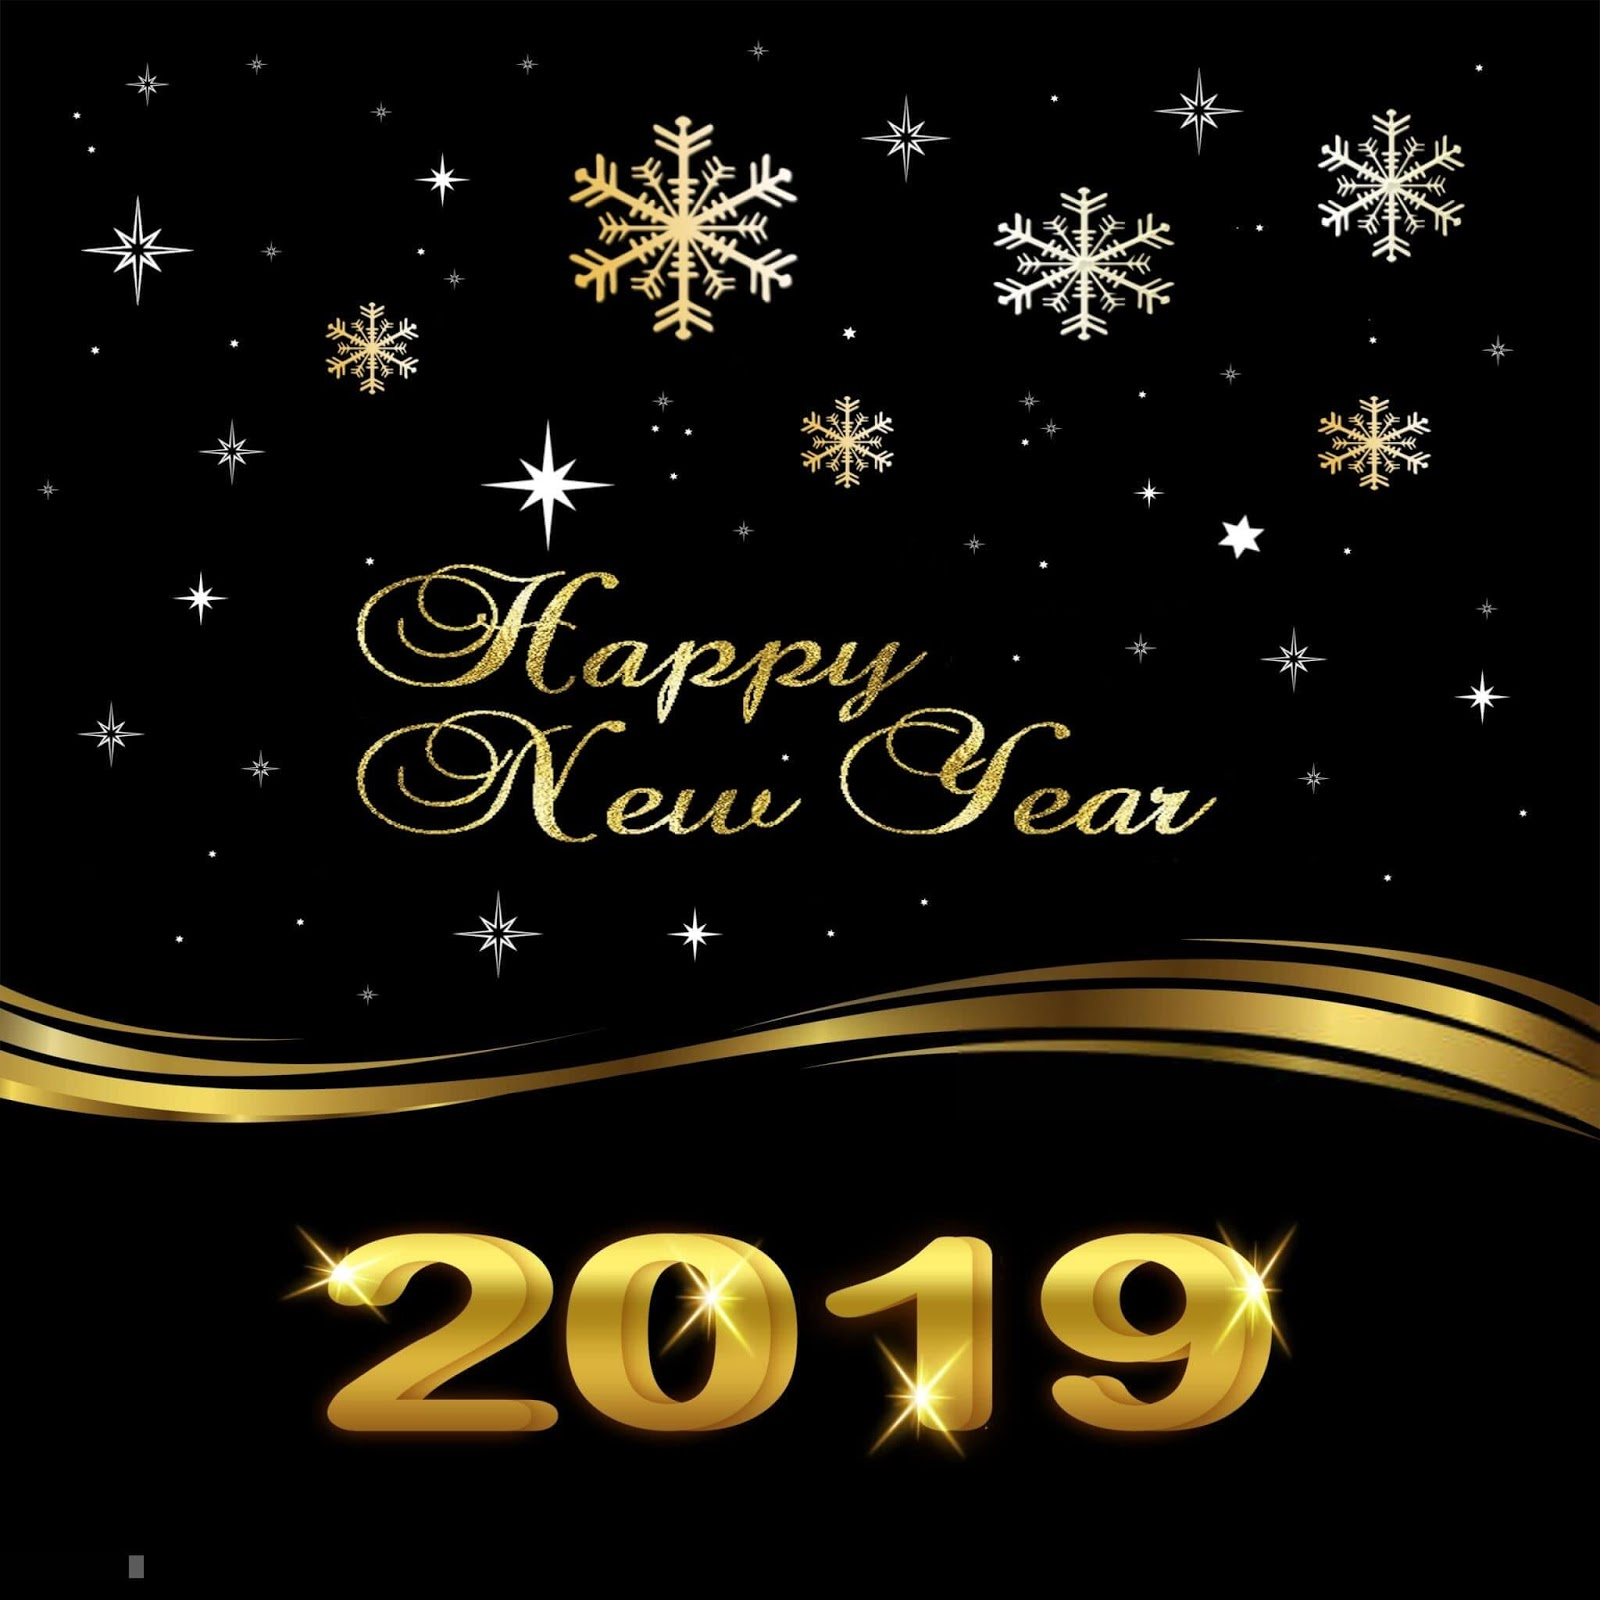 Happy New Year 2019 HD Wallpaper and Images Download Free